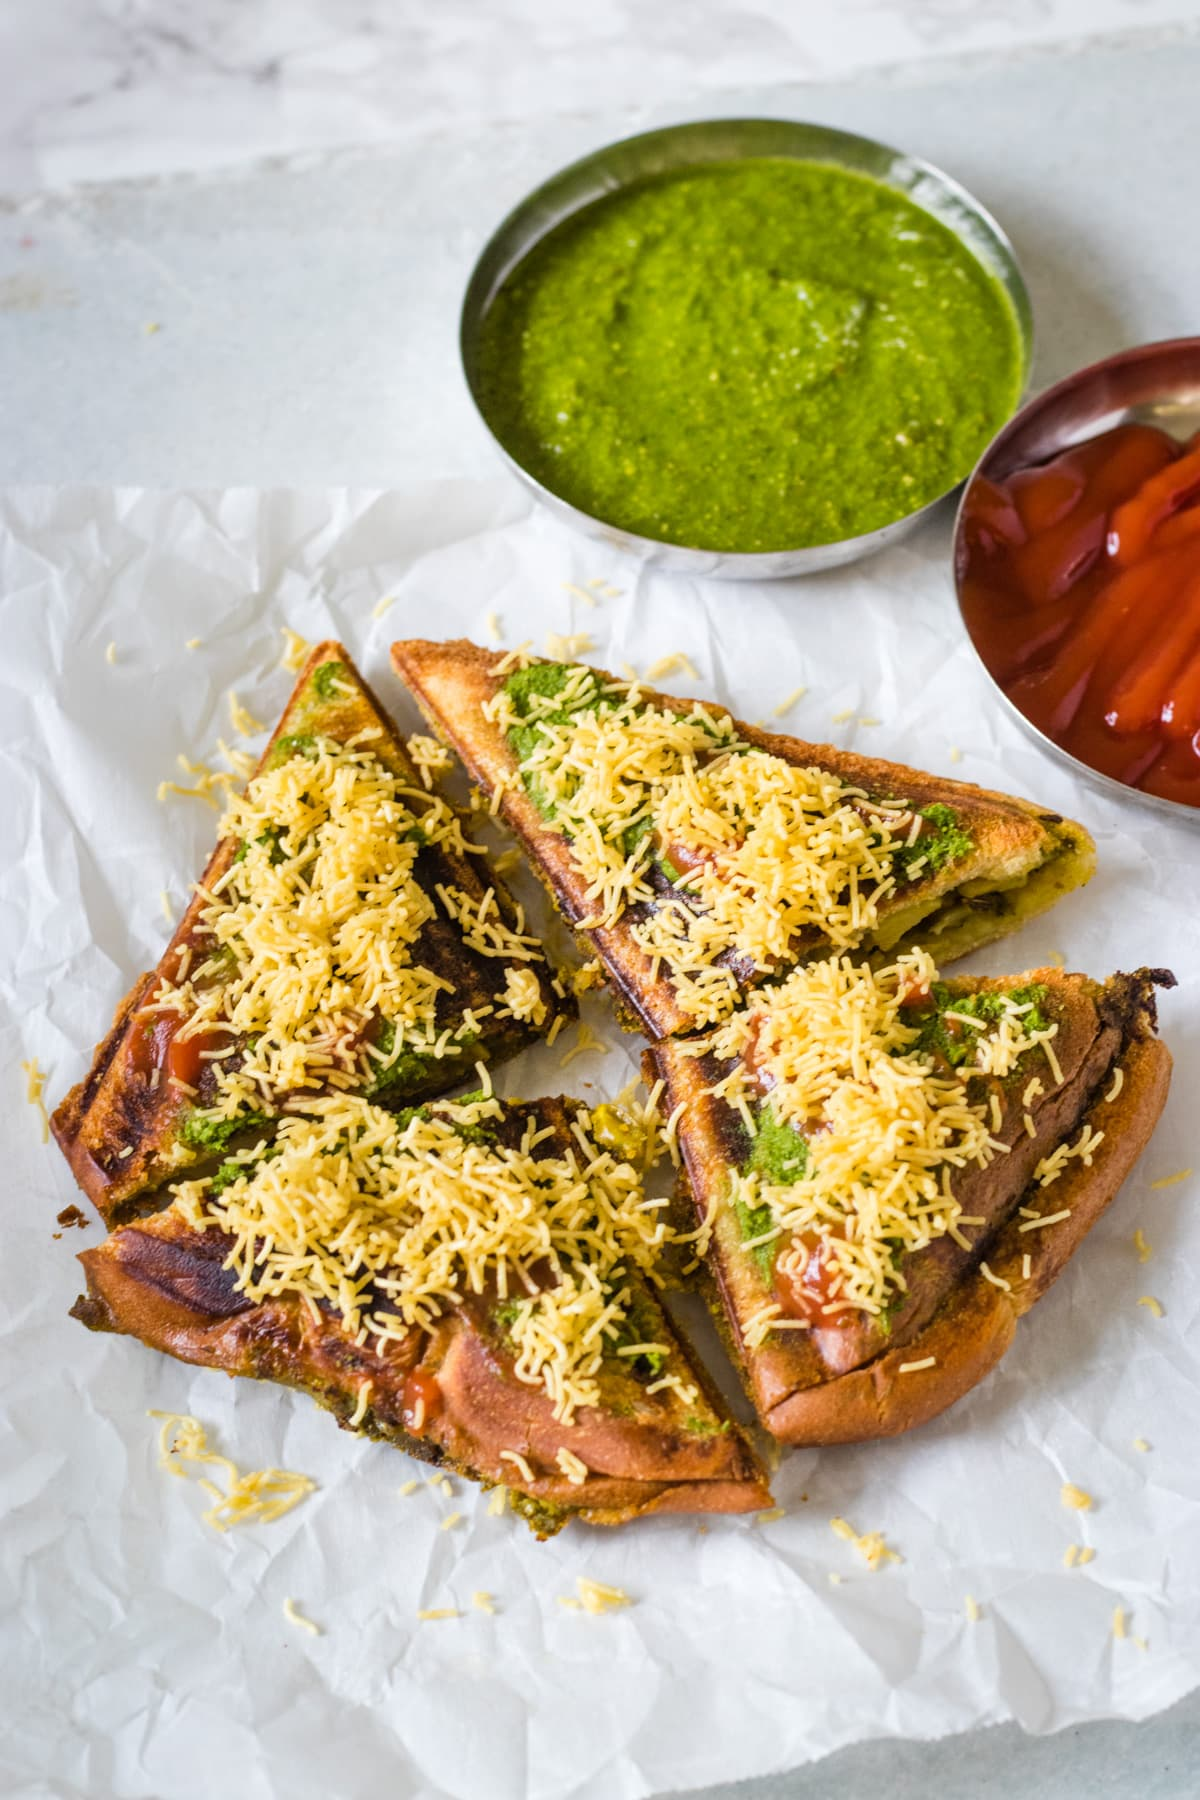 Masala toast sandwich garnished with sev and served with green chutney, ketchup.